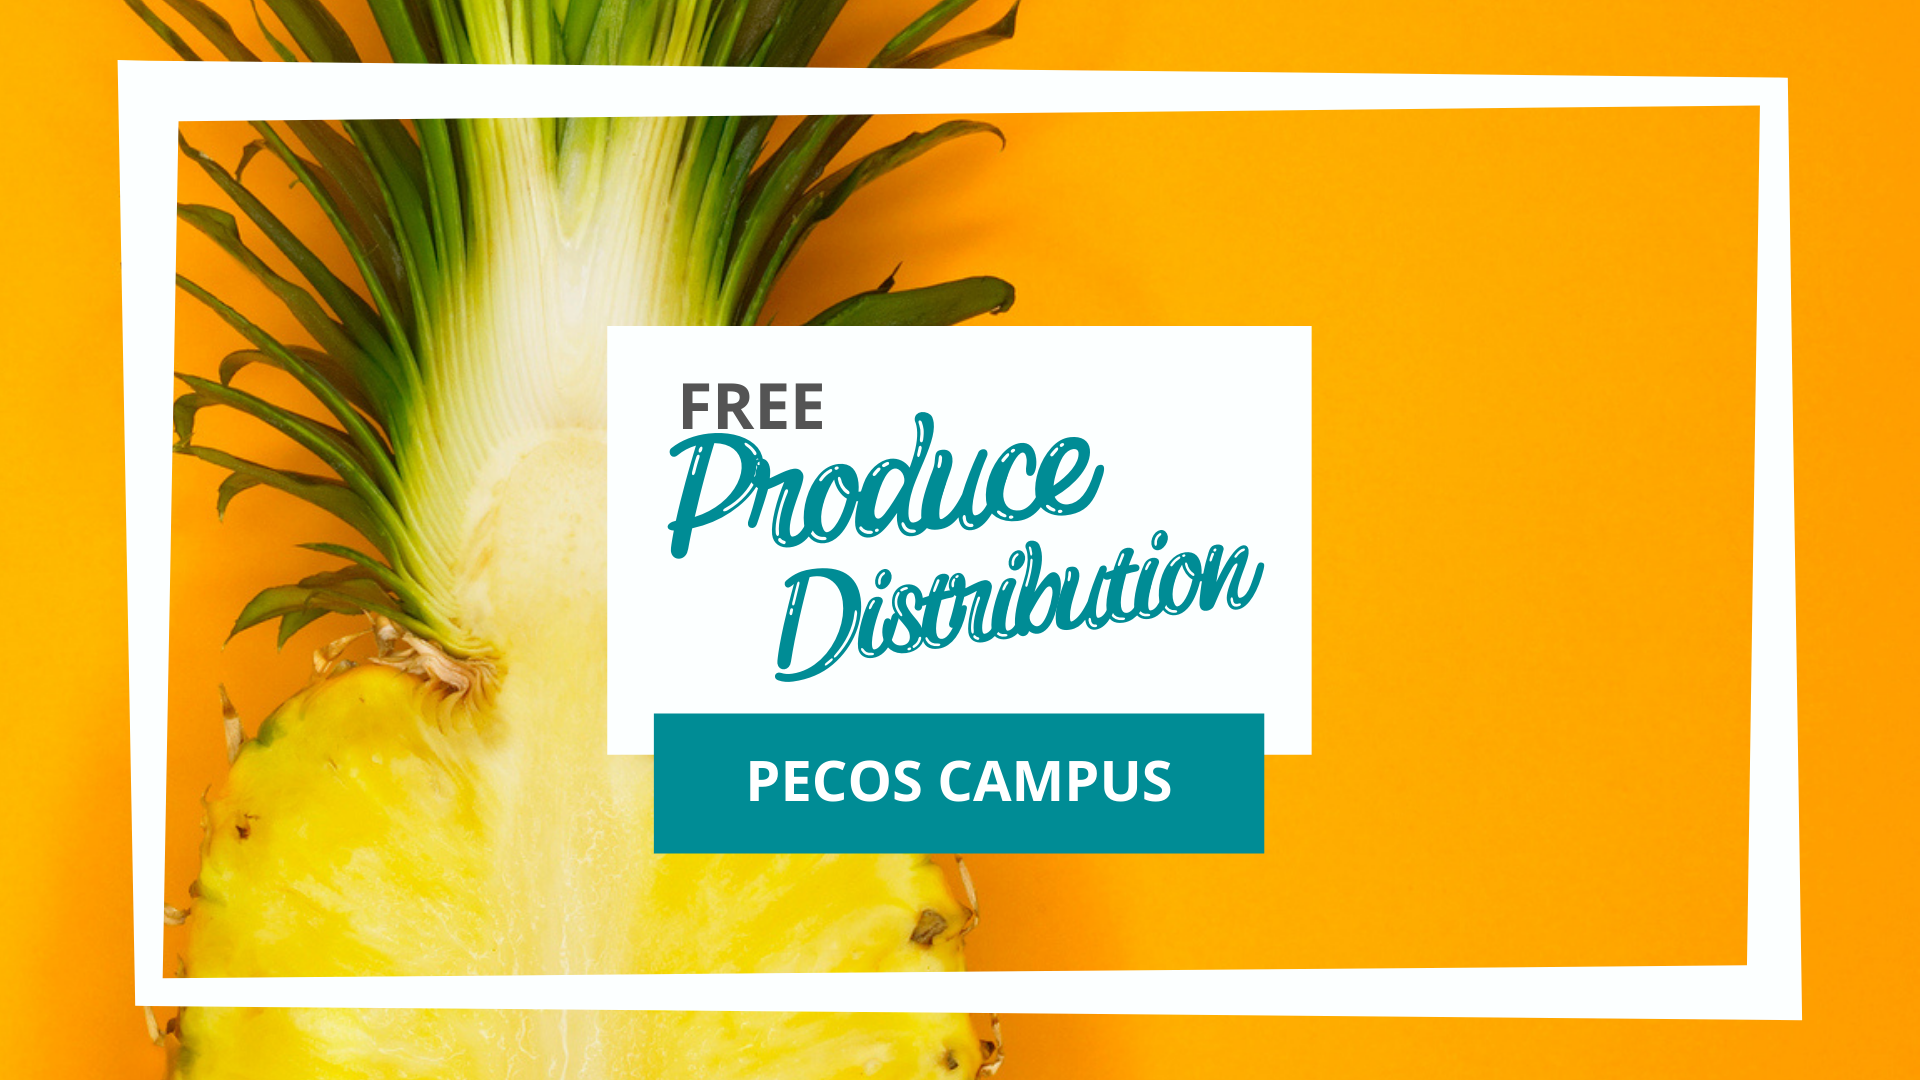 Pecos Campus Free Distribution Produce